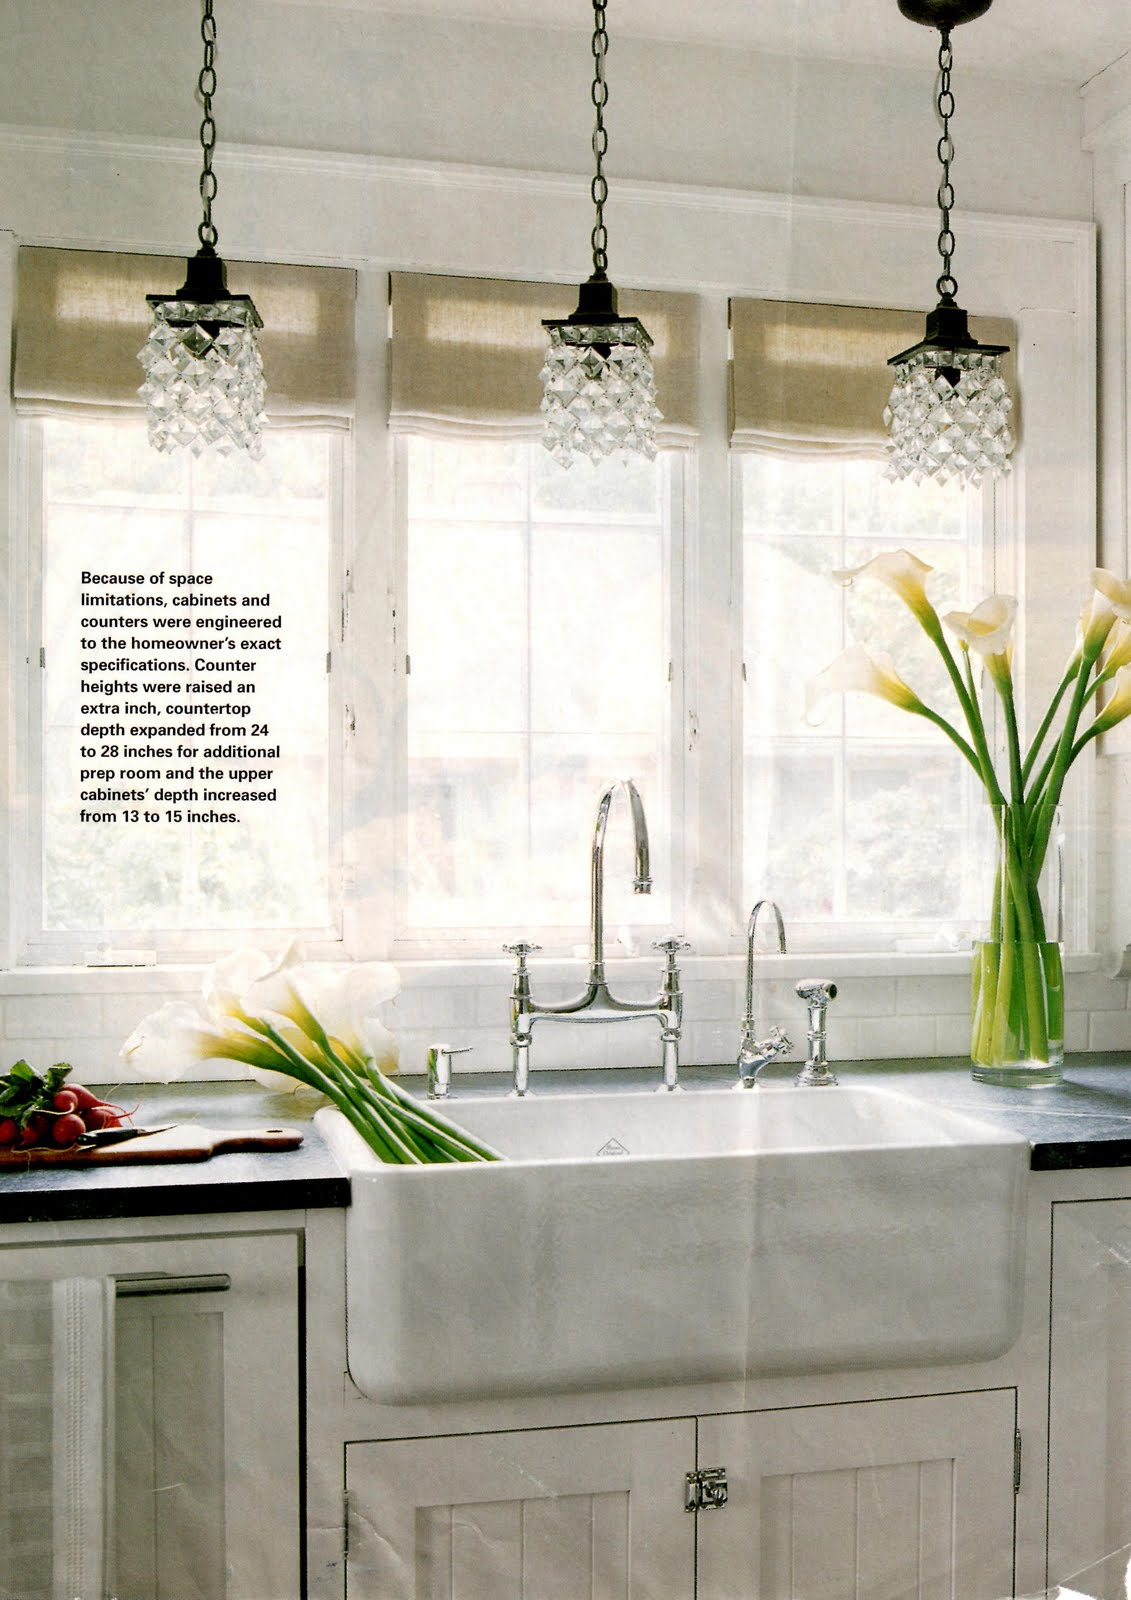 pendants over the kitchen sink - Design ManifestDesign Manifest